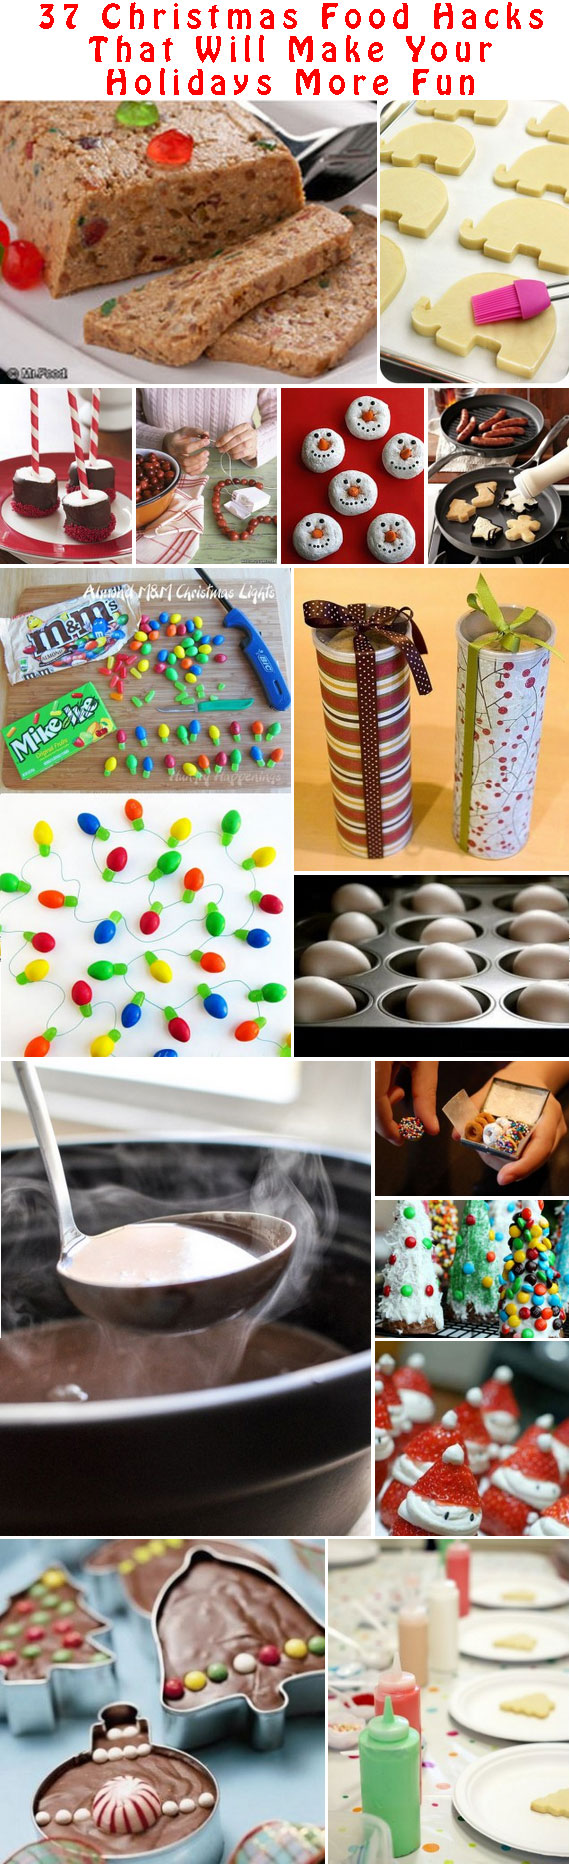 37 Christmas Food Hacks That Will Make Your Holidays More Fun